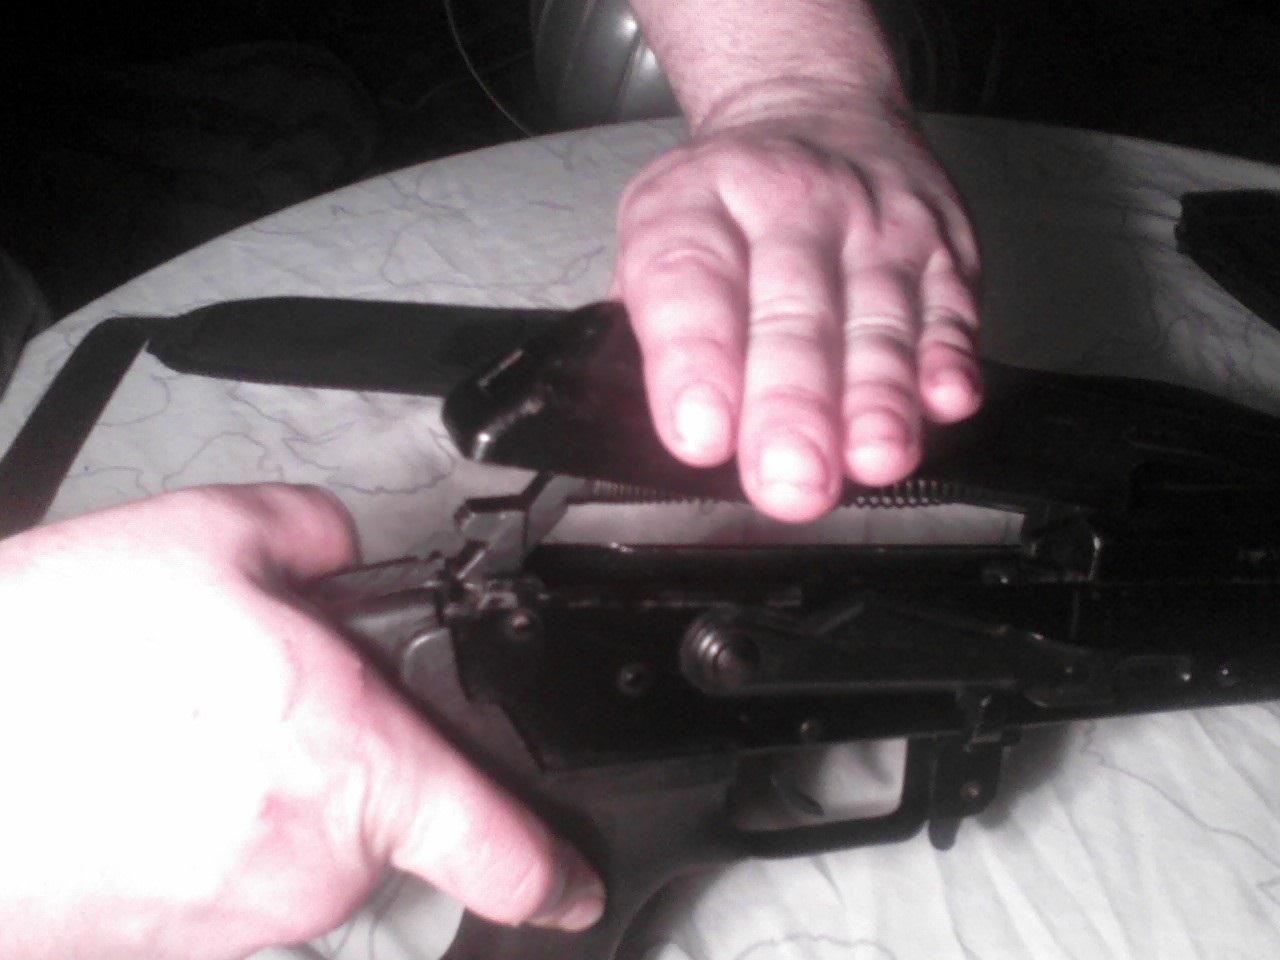 How to Clean an AK-47